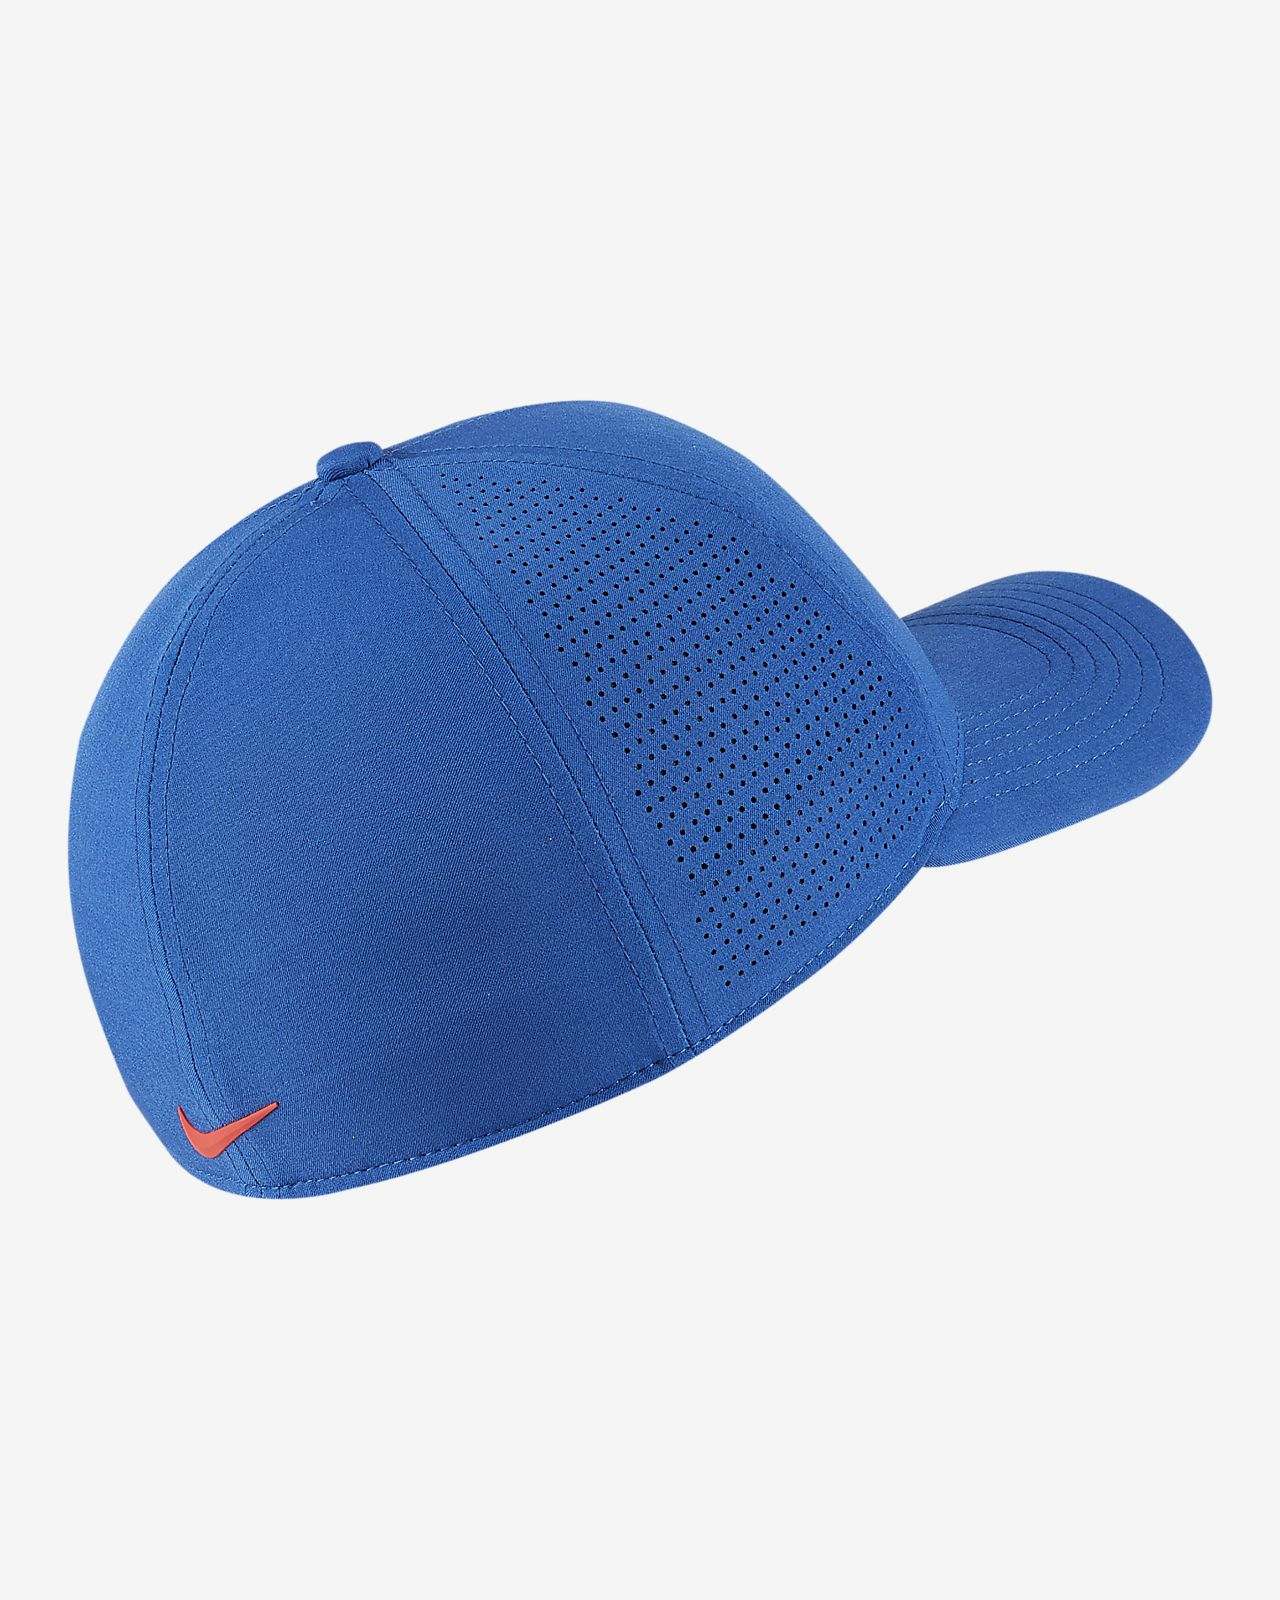 adfba54c1231e Nike AeroBill Classic 99 Fitted Golf Hat